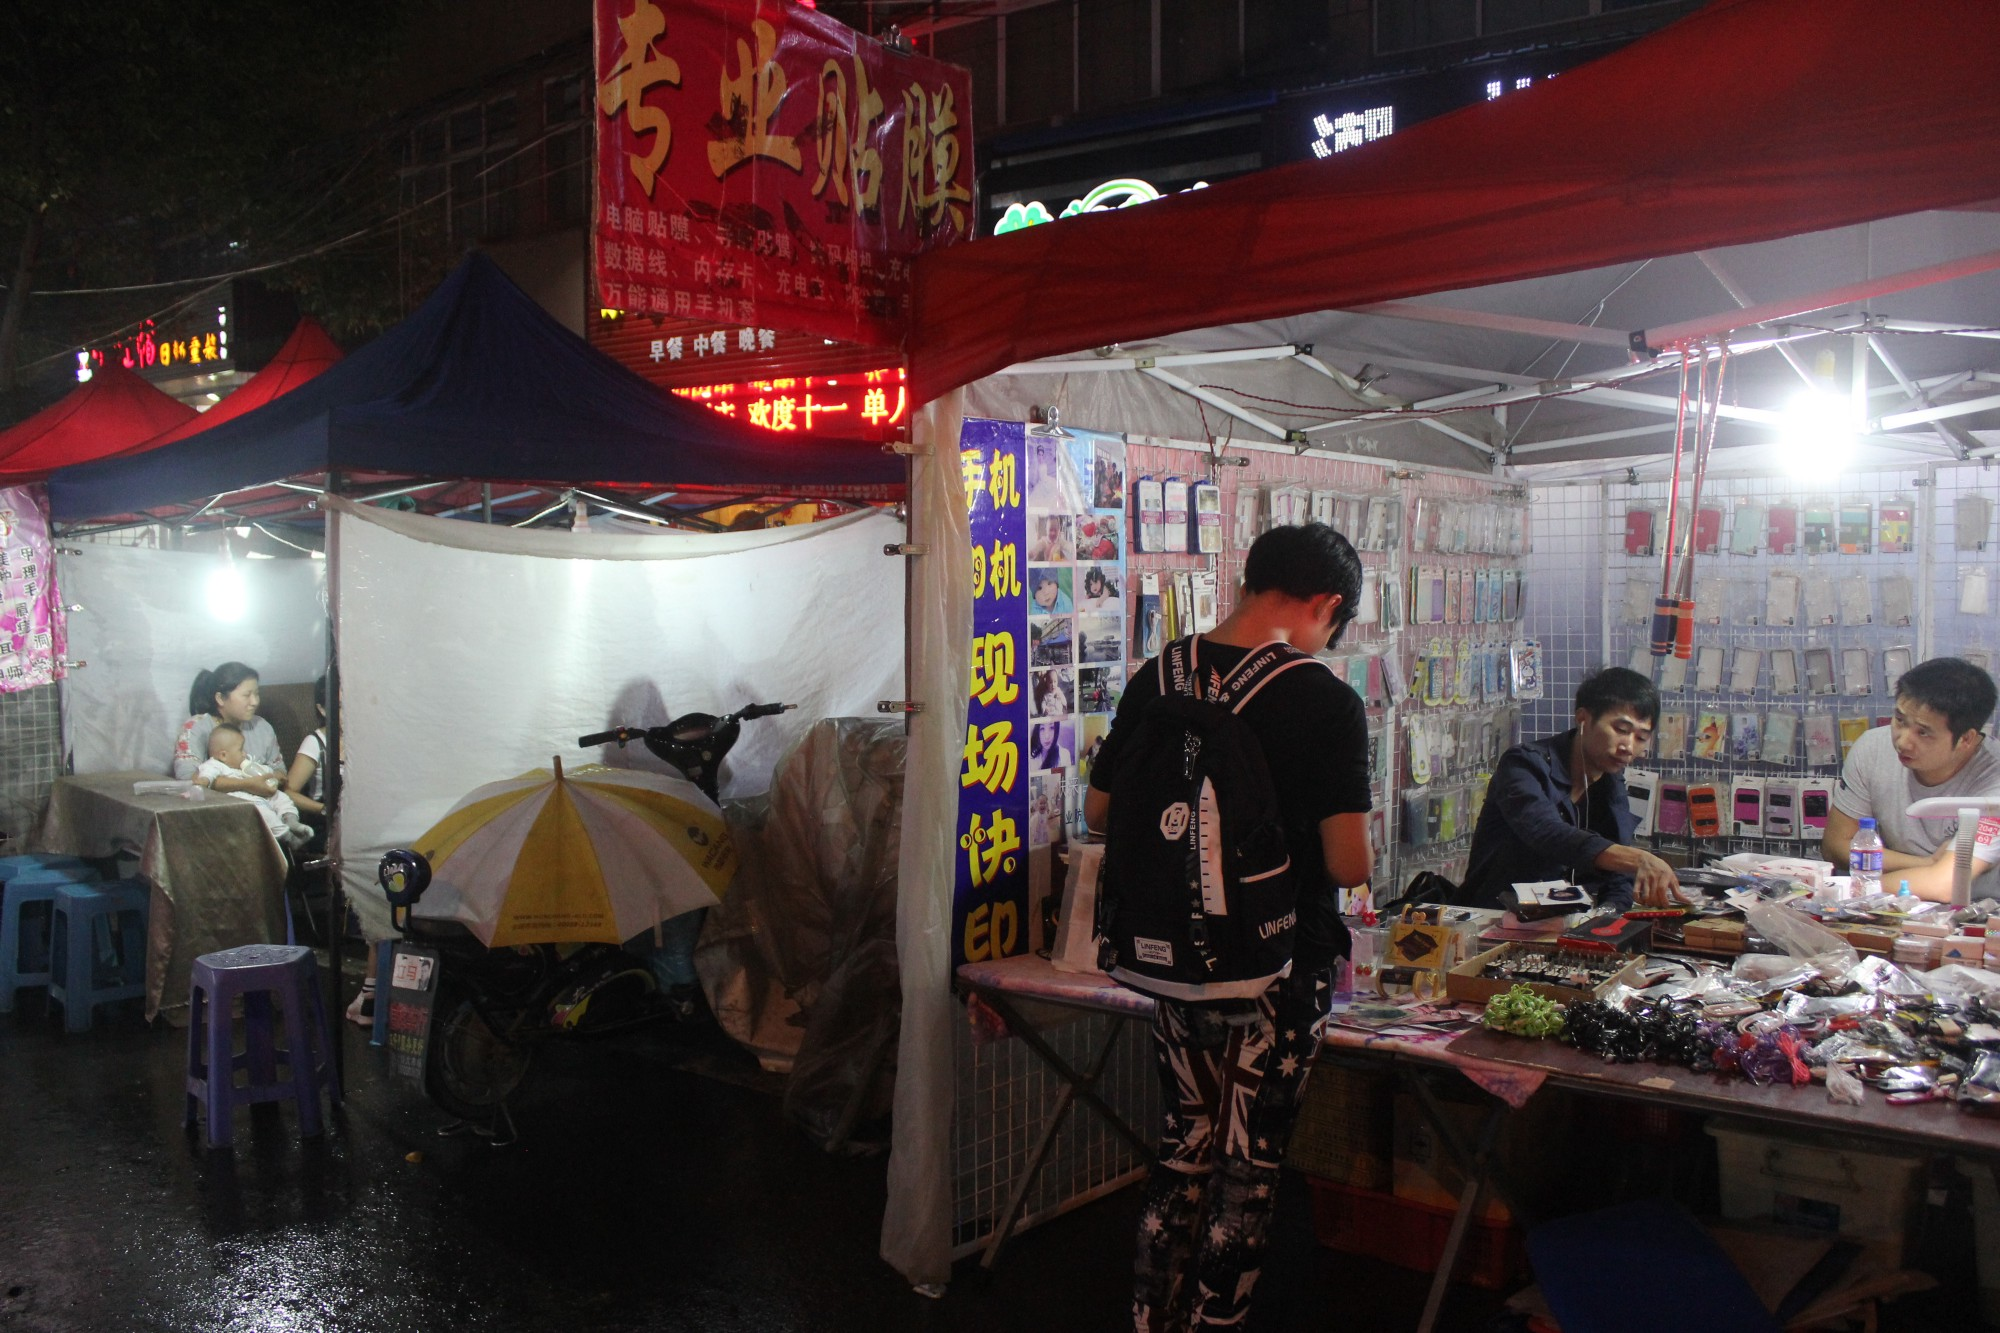 A night market in Jiangxi, China